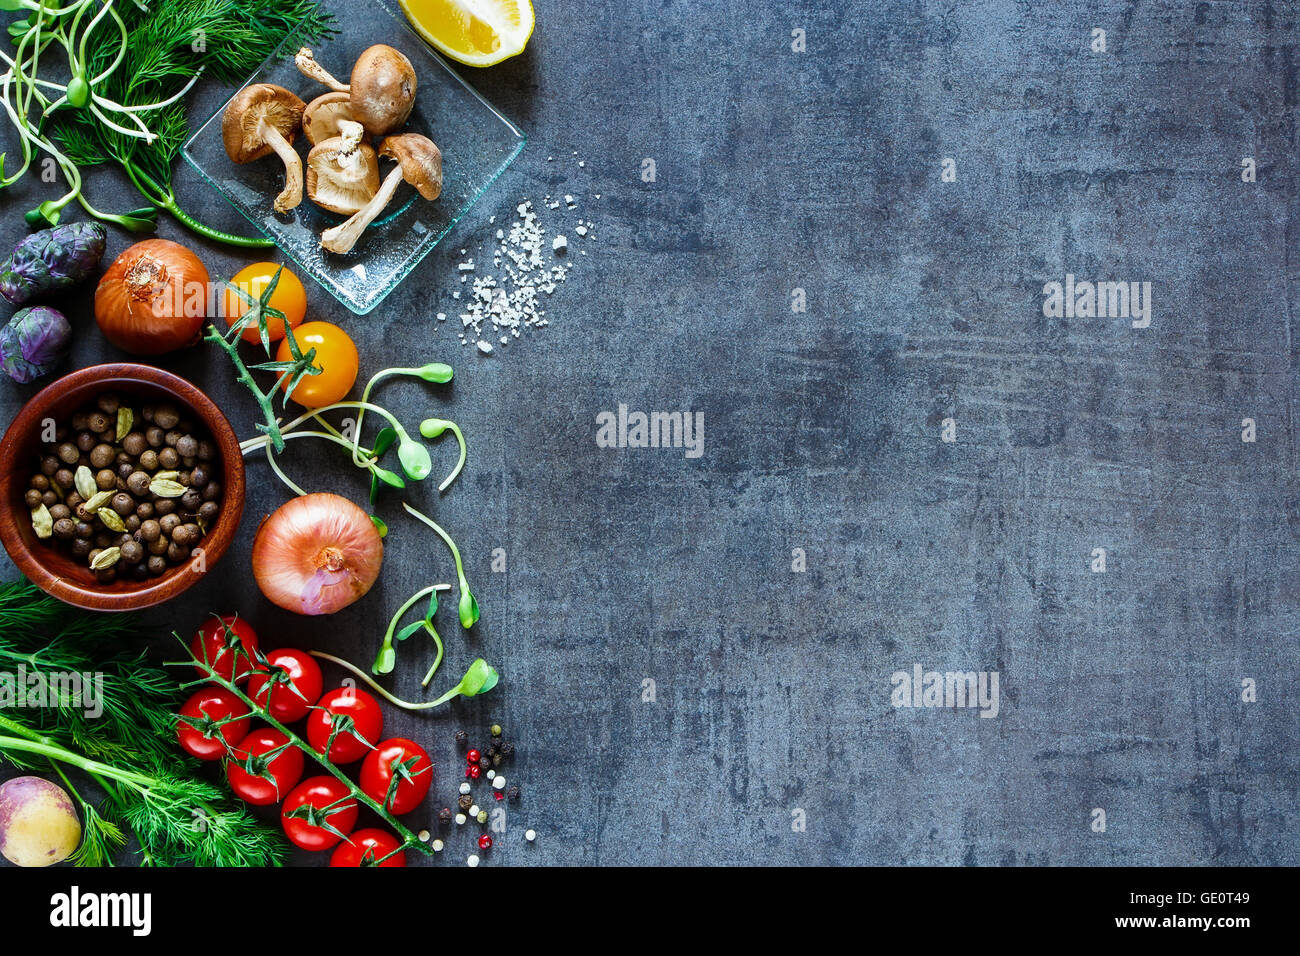 Garden Vegetables With Fresh Ingredients For Healthily Cooking On Stock Photo Alamy